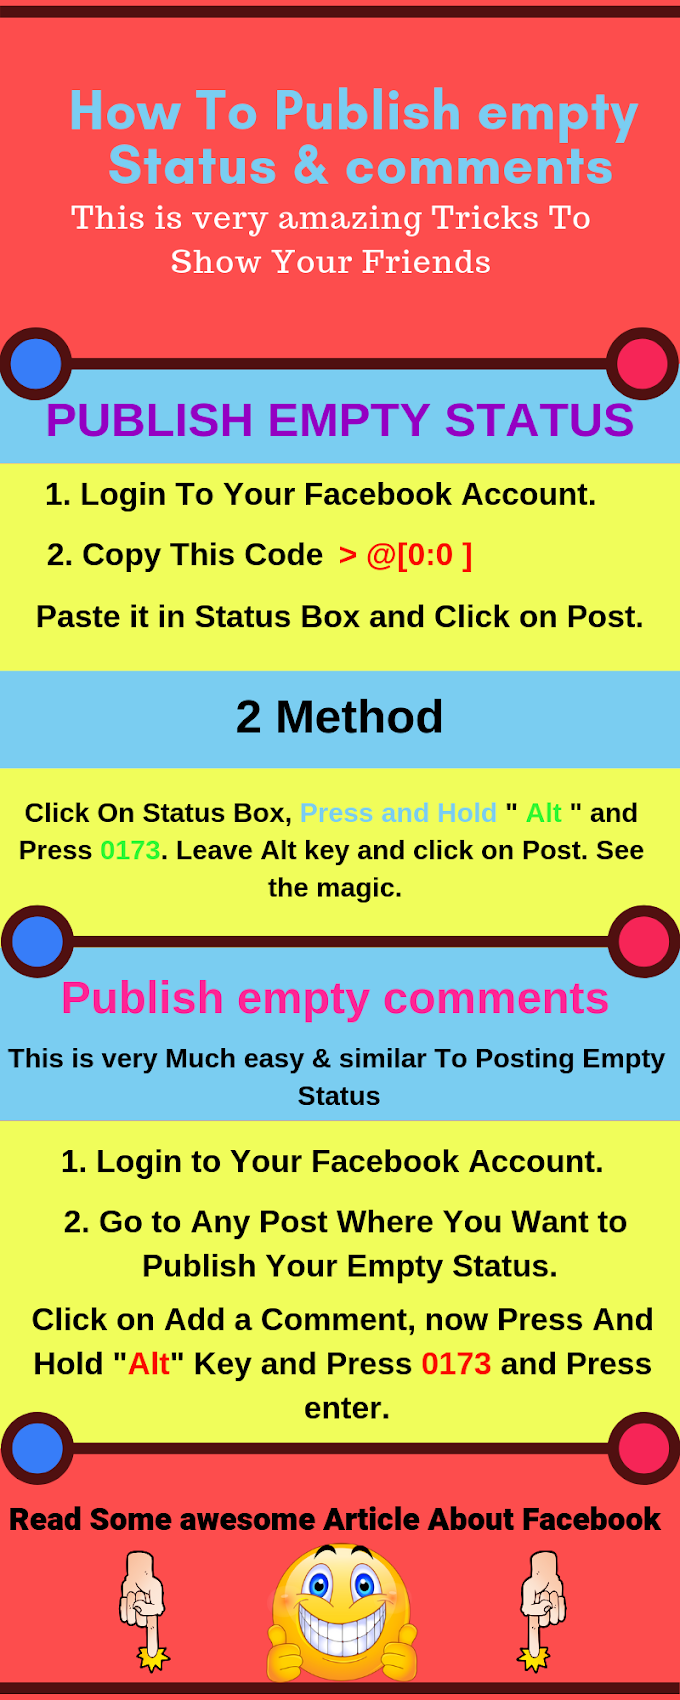 How To Publish empty Status & comments